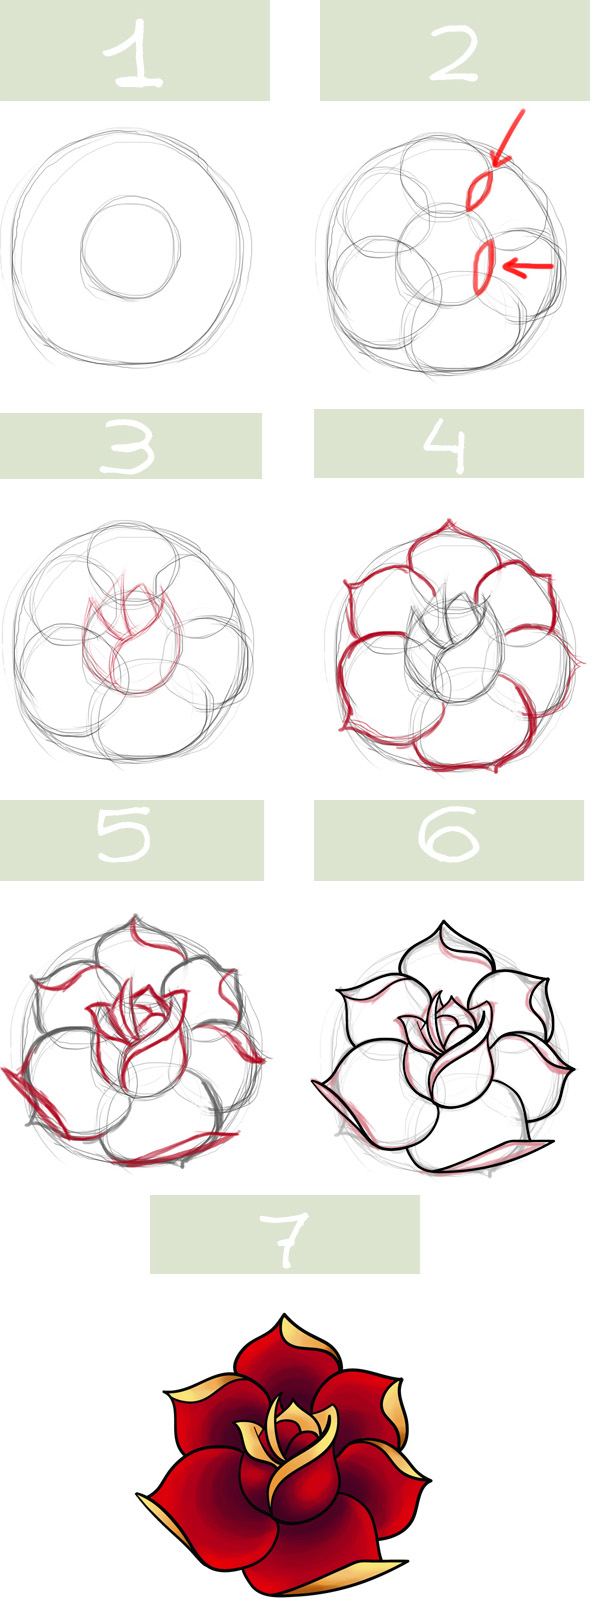 Drawn rose detail drawing :/ draw kids must this